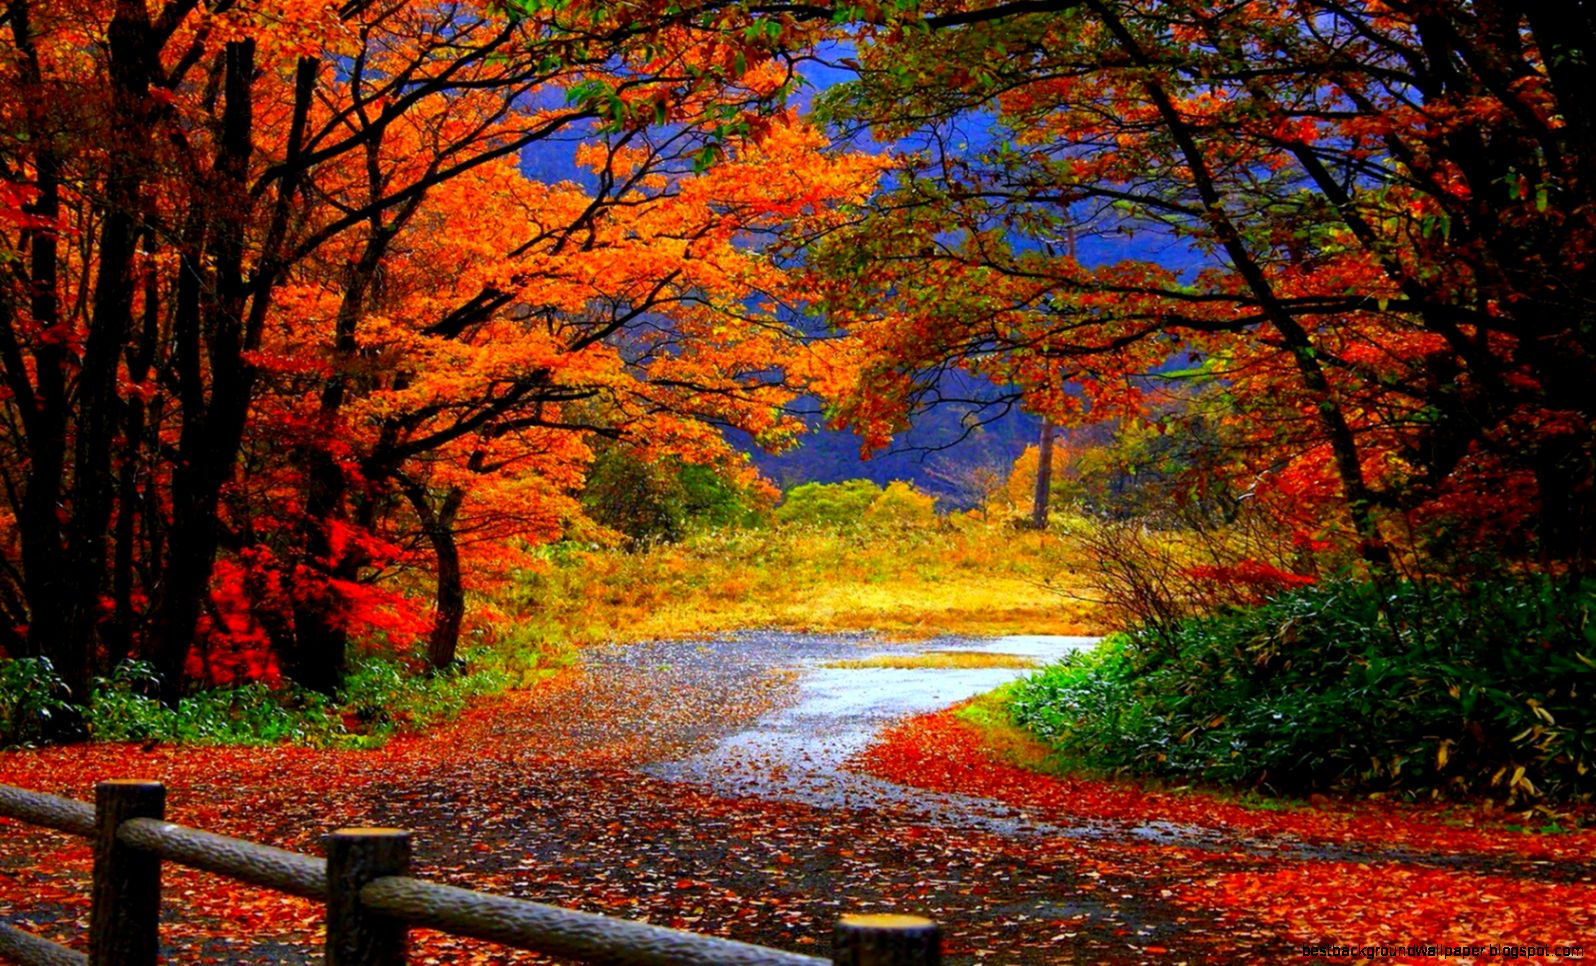 Hd Fall Wallpapers Desktop